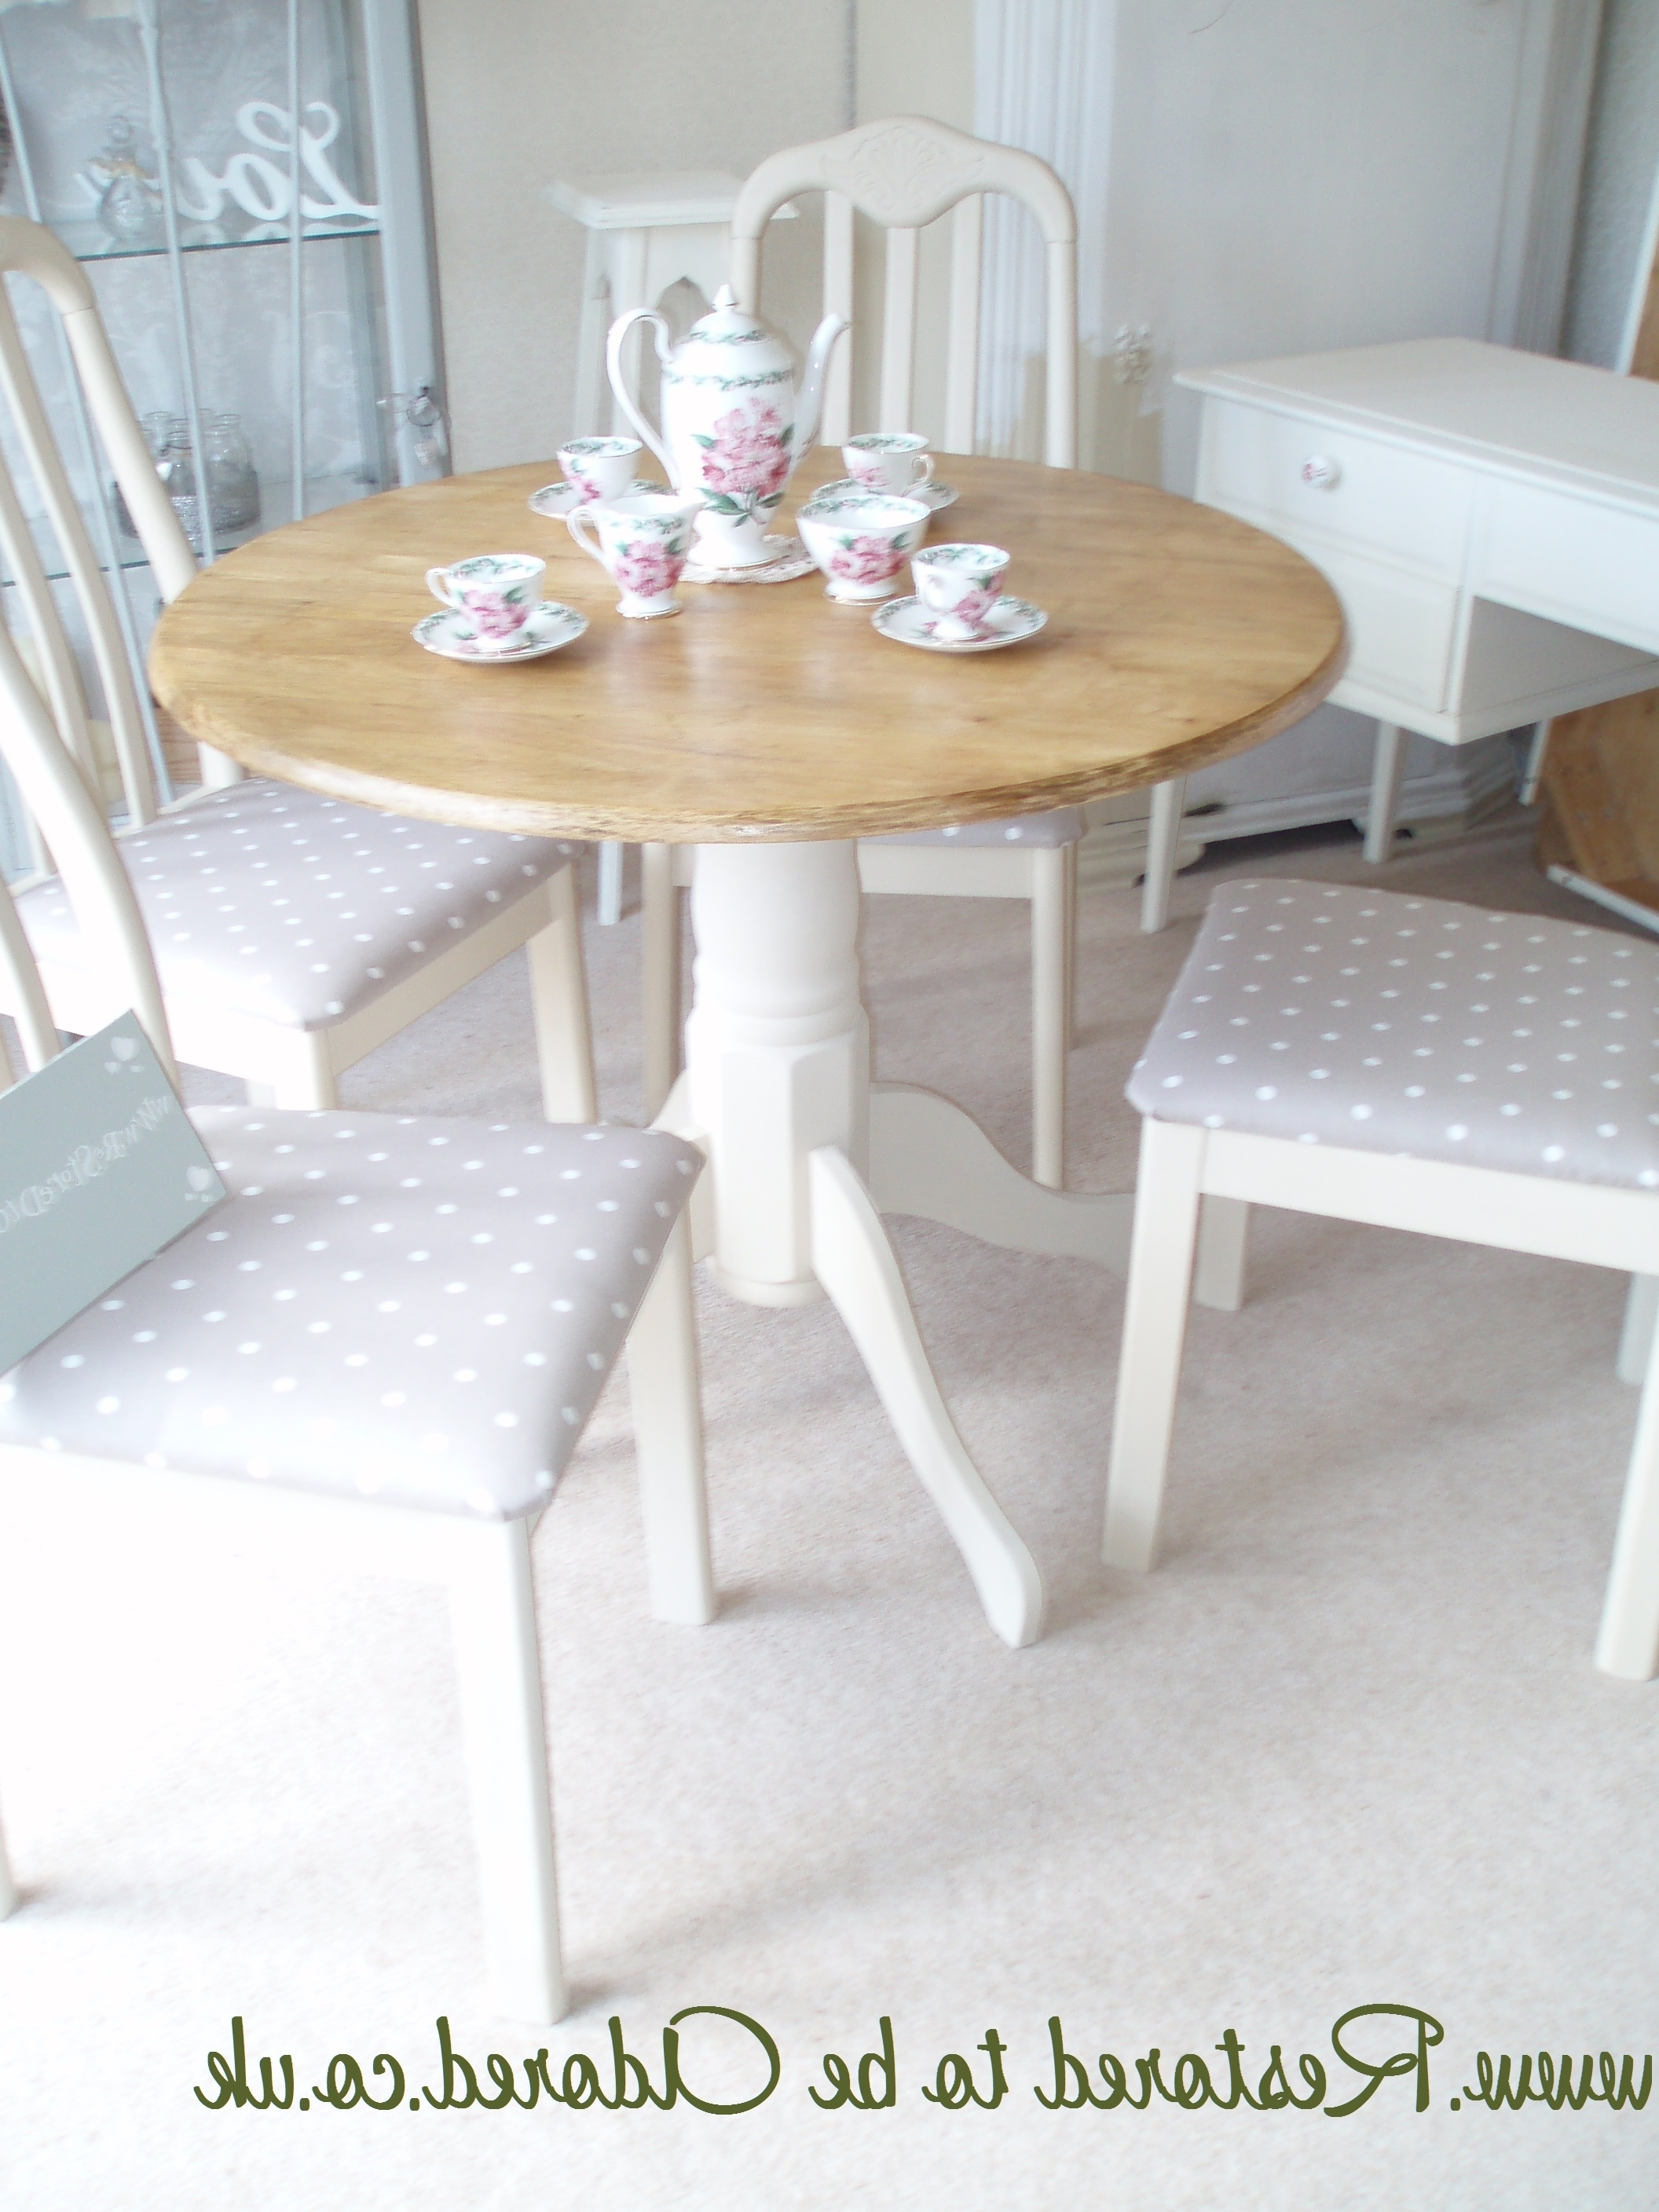 Shabby Chic Dining Sets With Regard To Preferred Shabby Chic Dining Table And Chairs Set – Castrophotos (View 12 of 25)